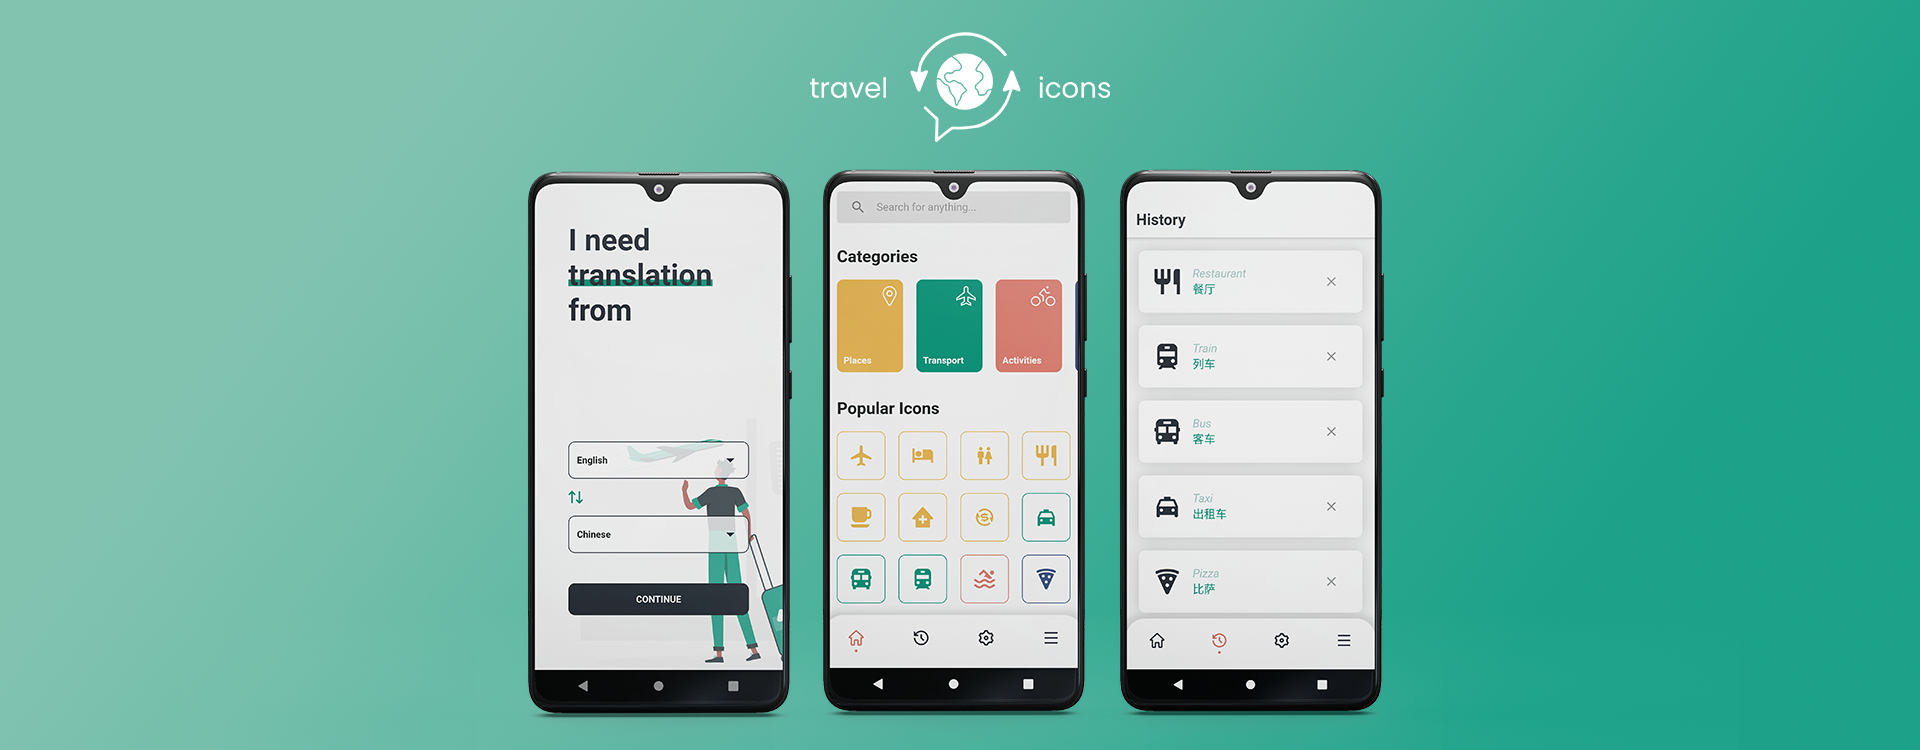 How We Built the Travel Icons App